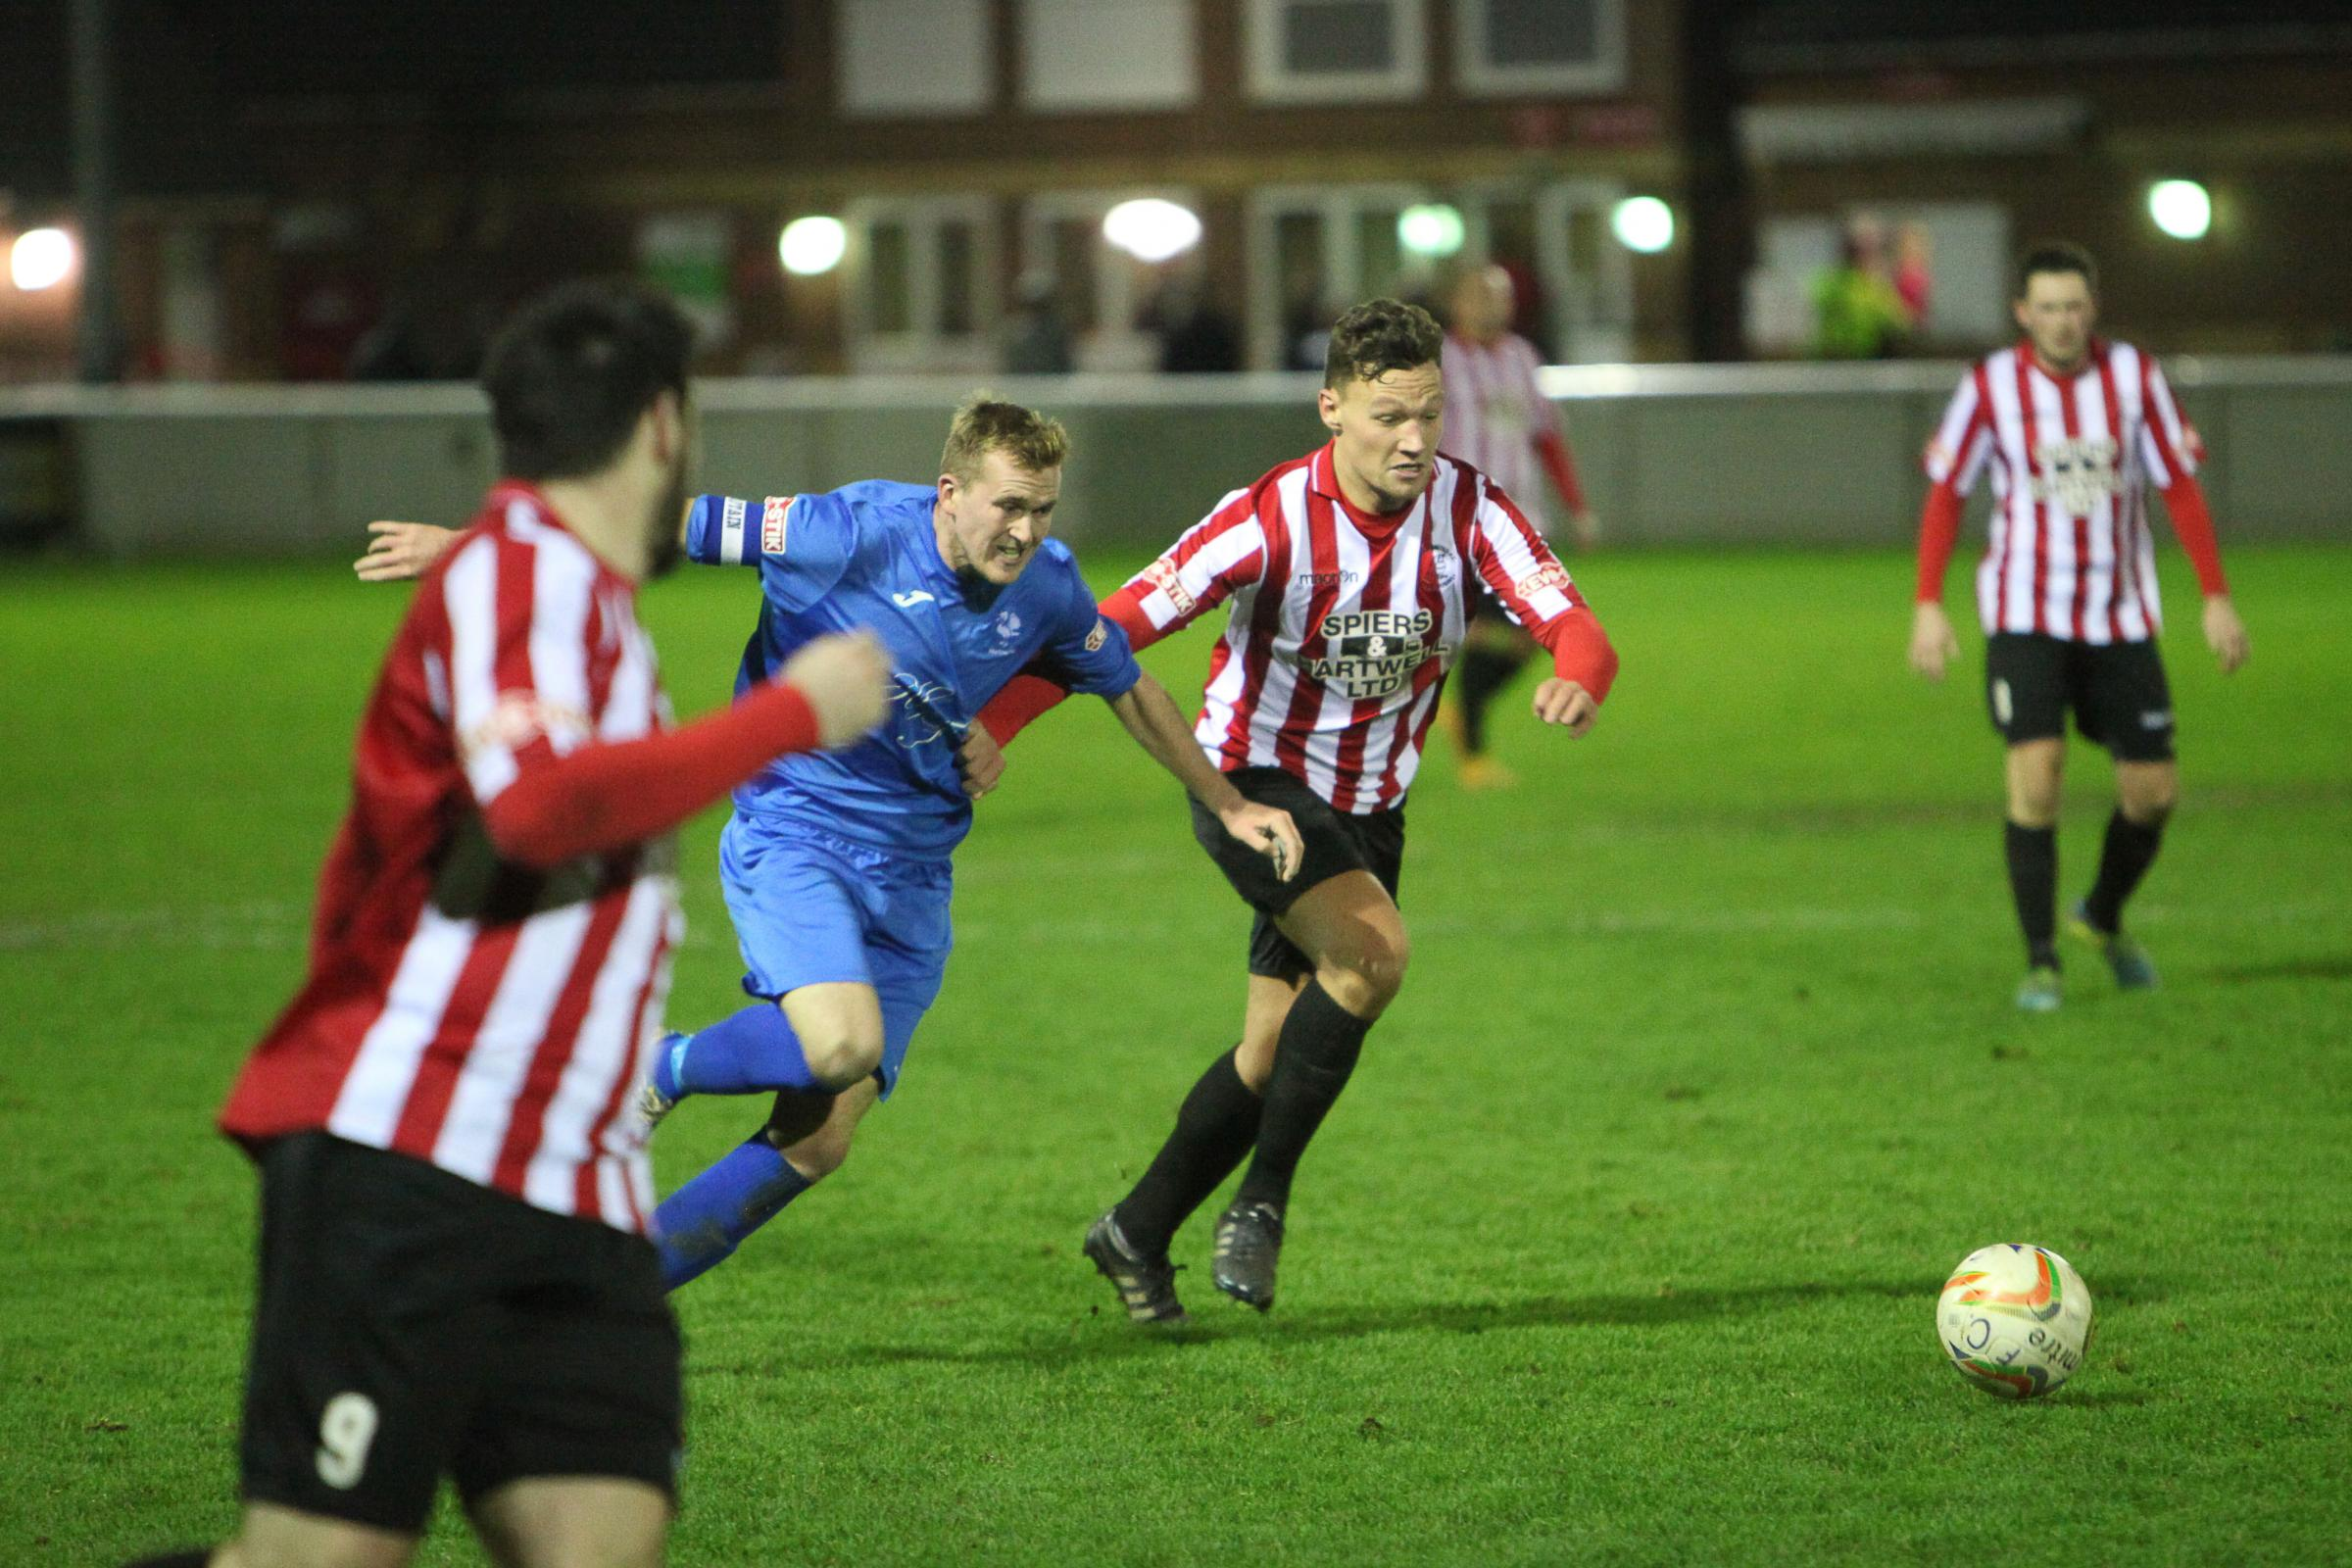 READY TO ROLL: Evesham United's Liam Harding